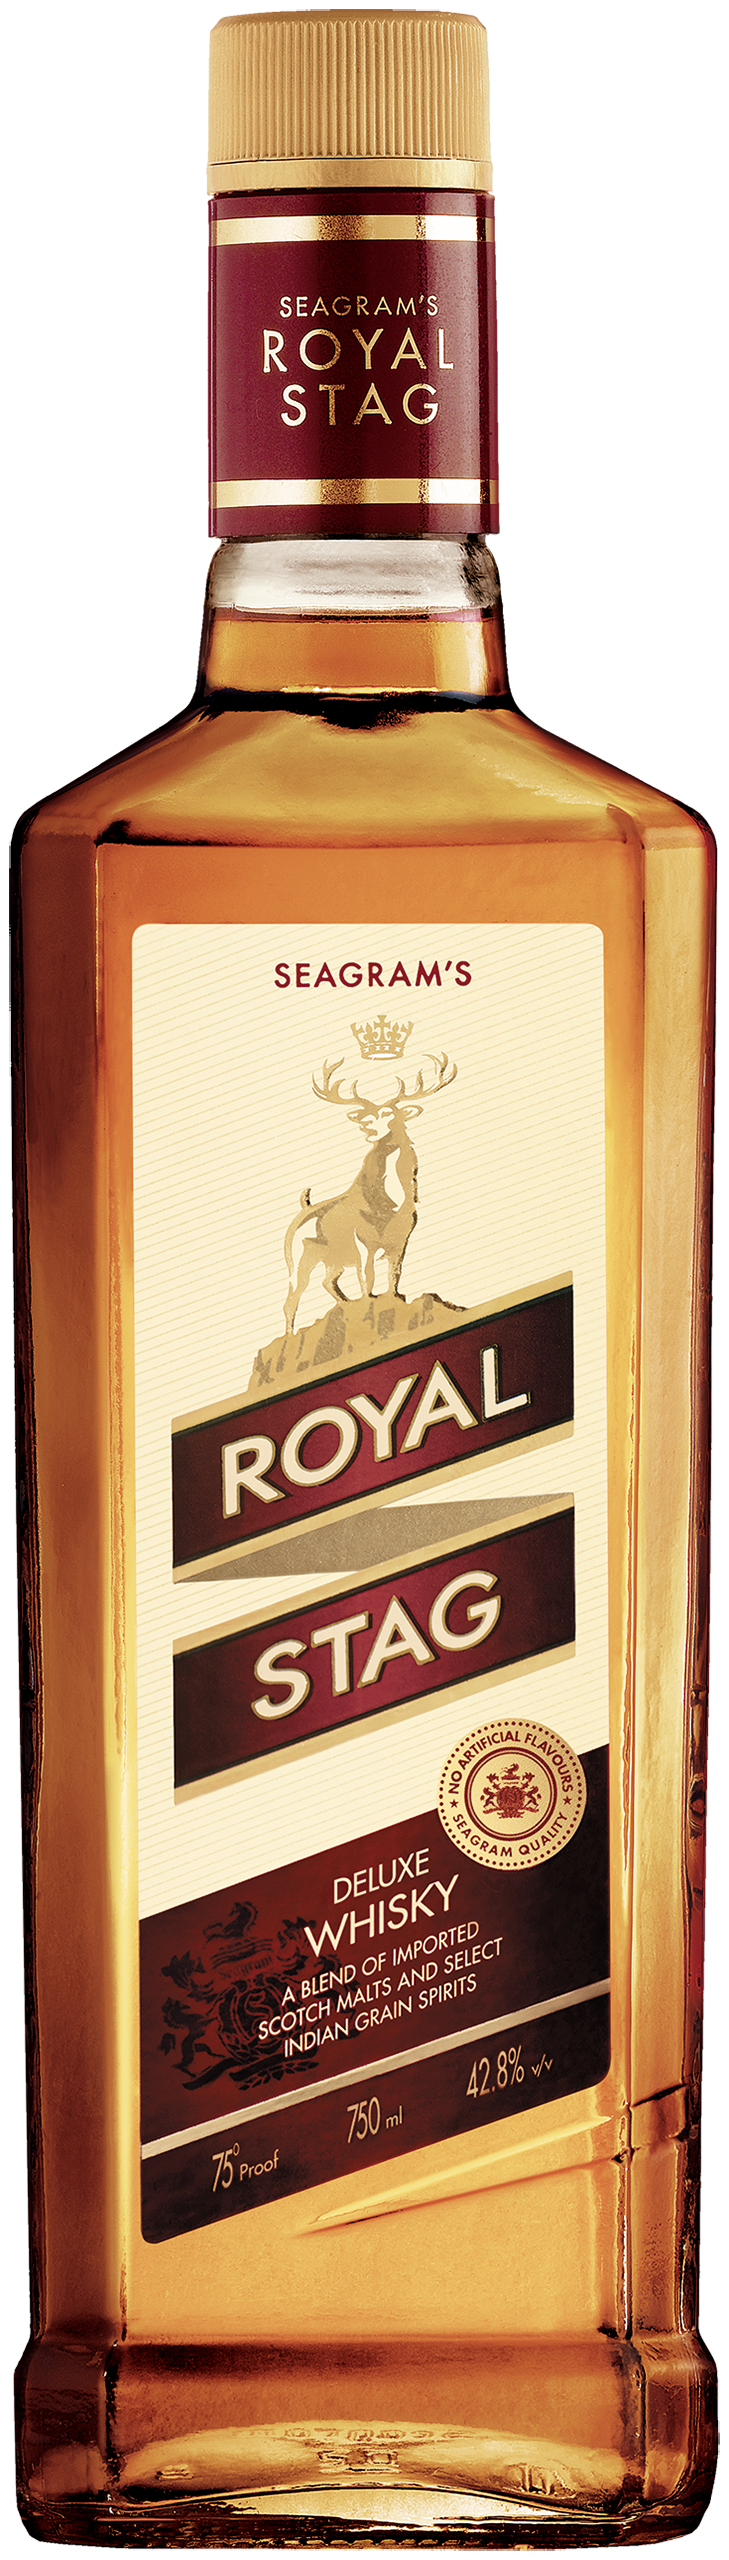 Packshot Royal Stag